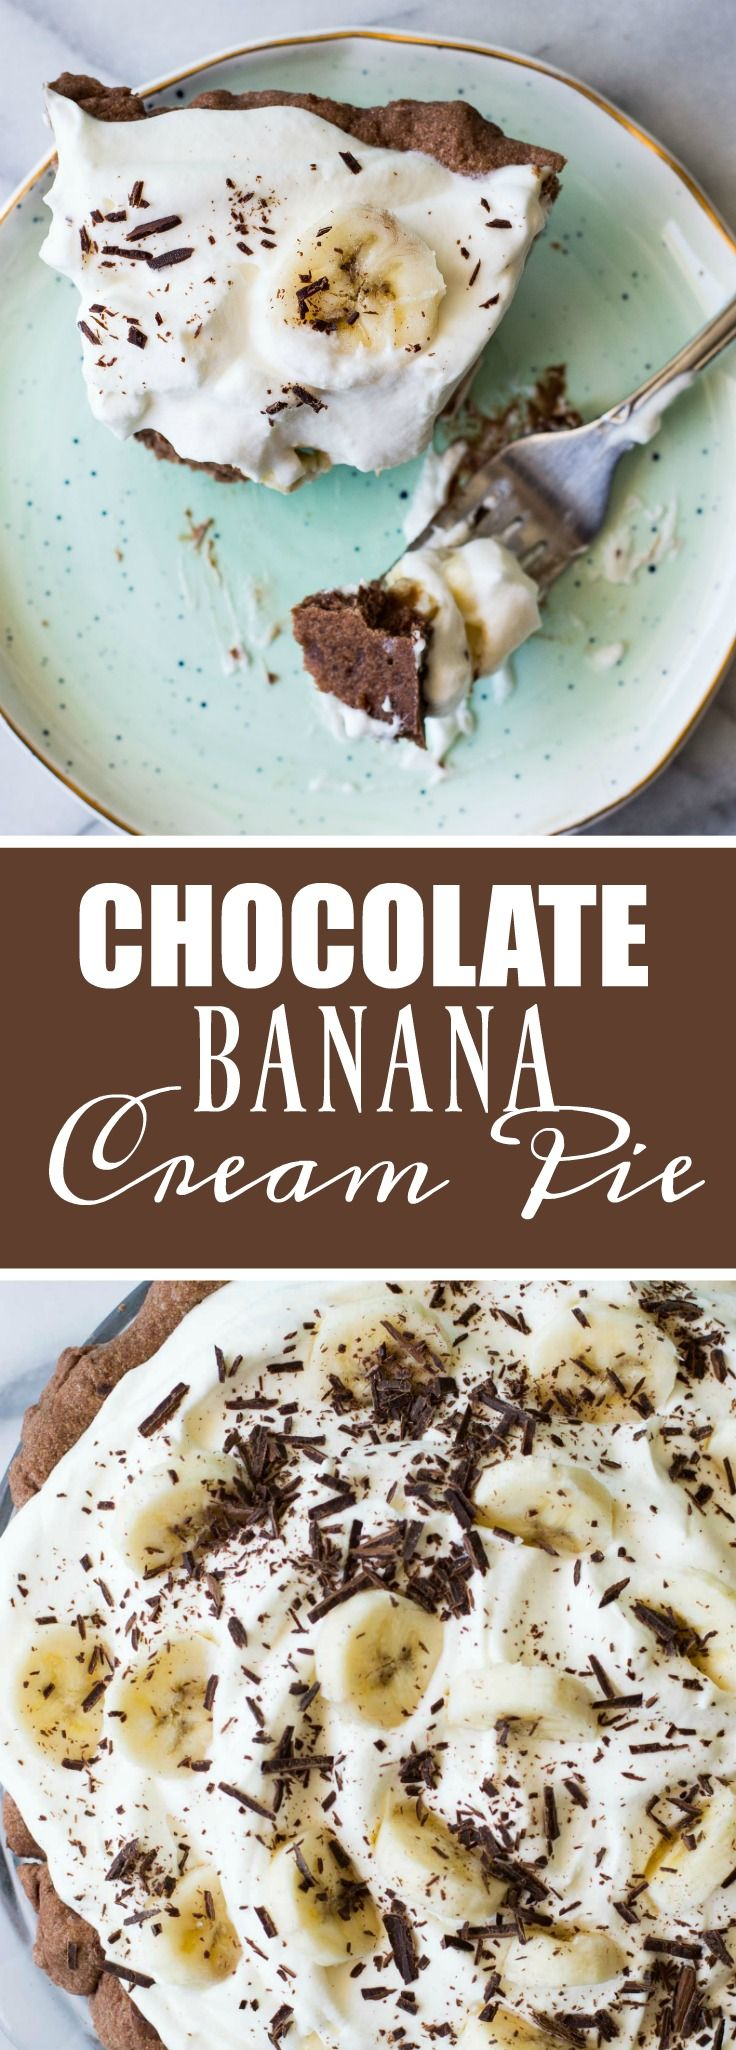 Chocolate Banana Cream Pie #bananapie